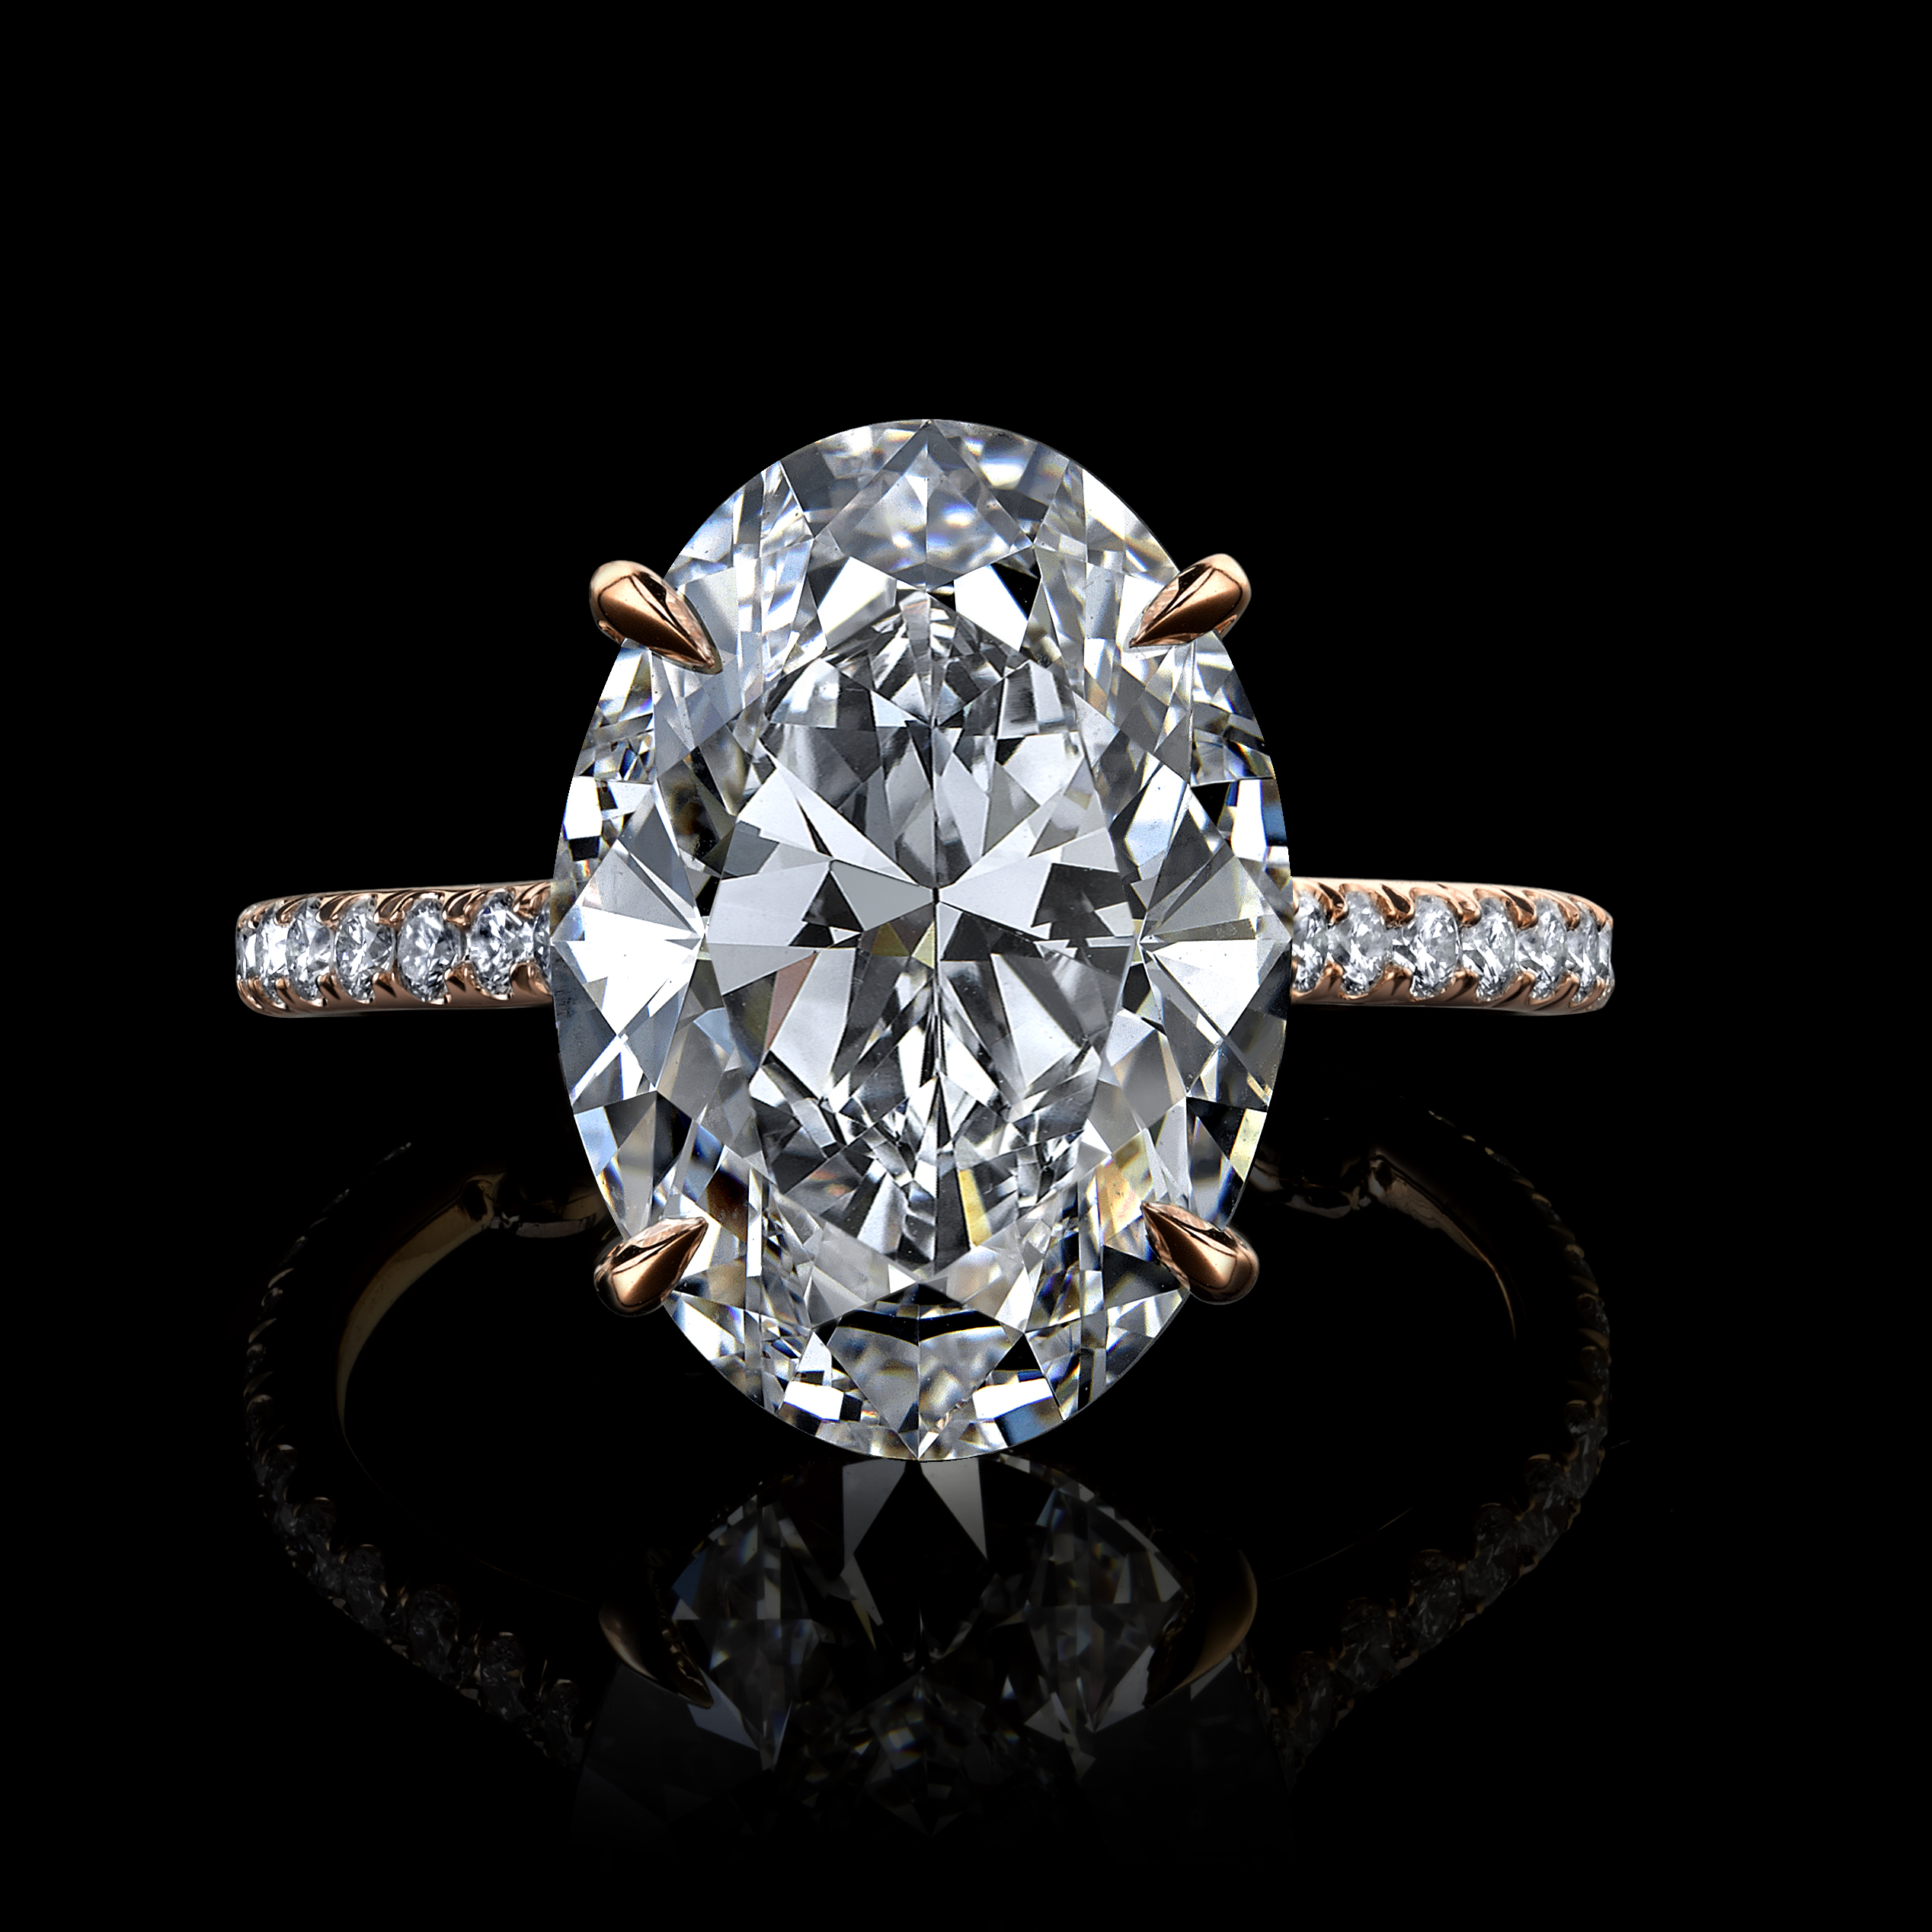 s jewellery karl designs exclusive ring at lagerfeld engagement first new diamond look an pin